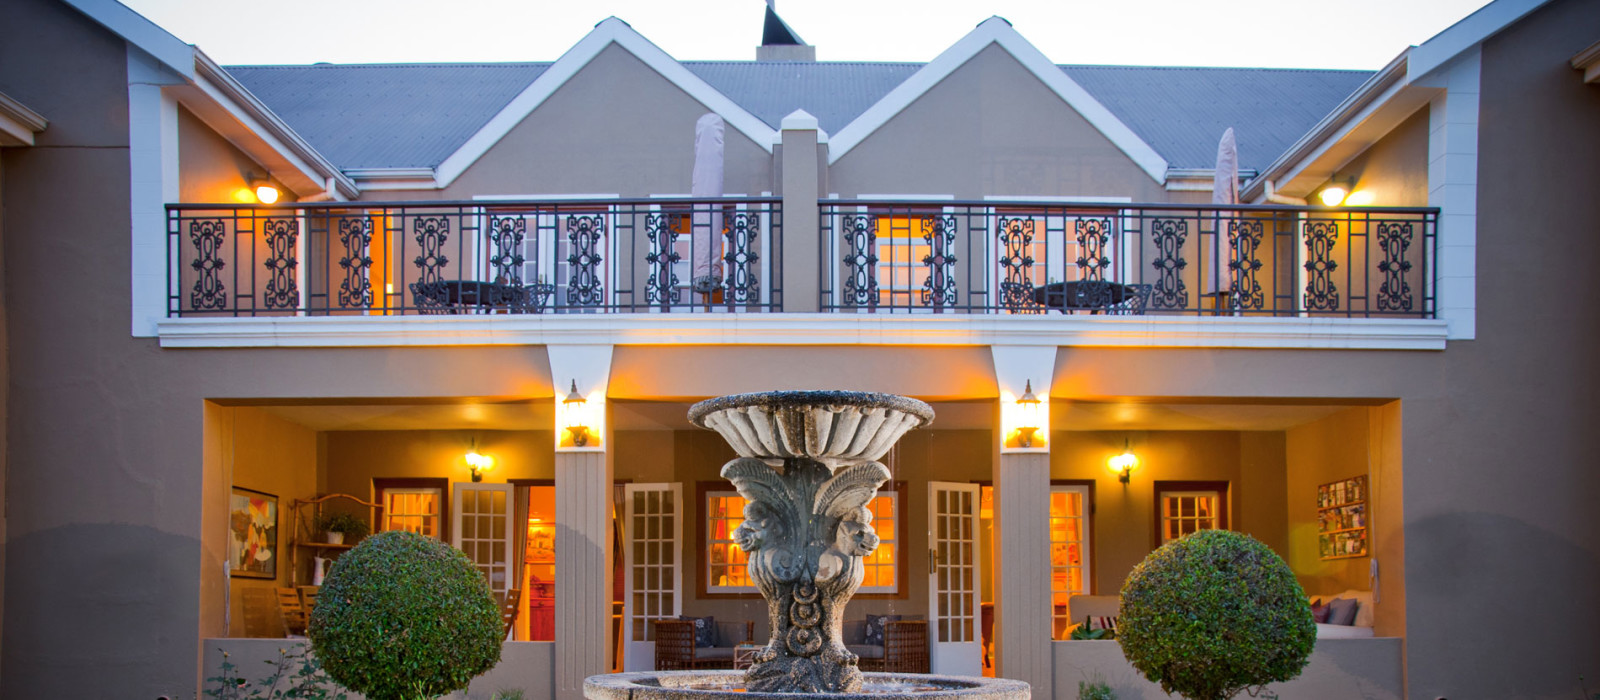 Hotel Rusthuiz Guest House South Africa